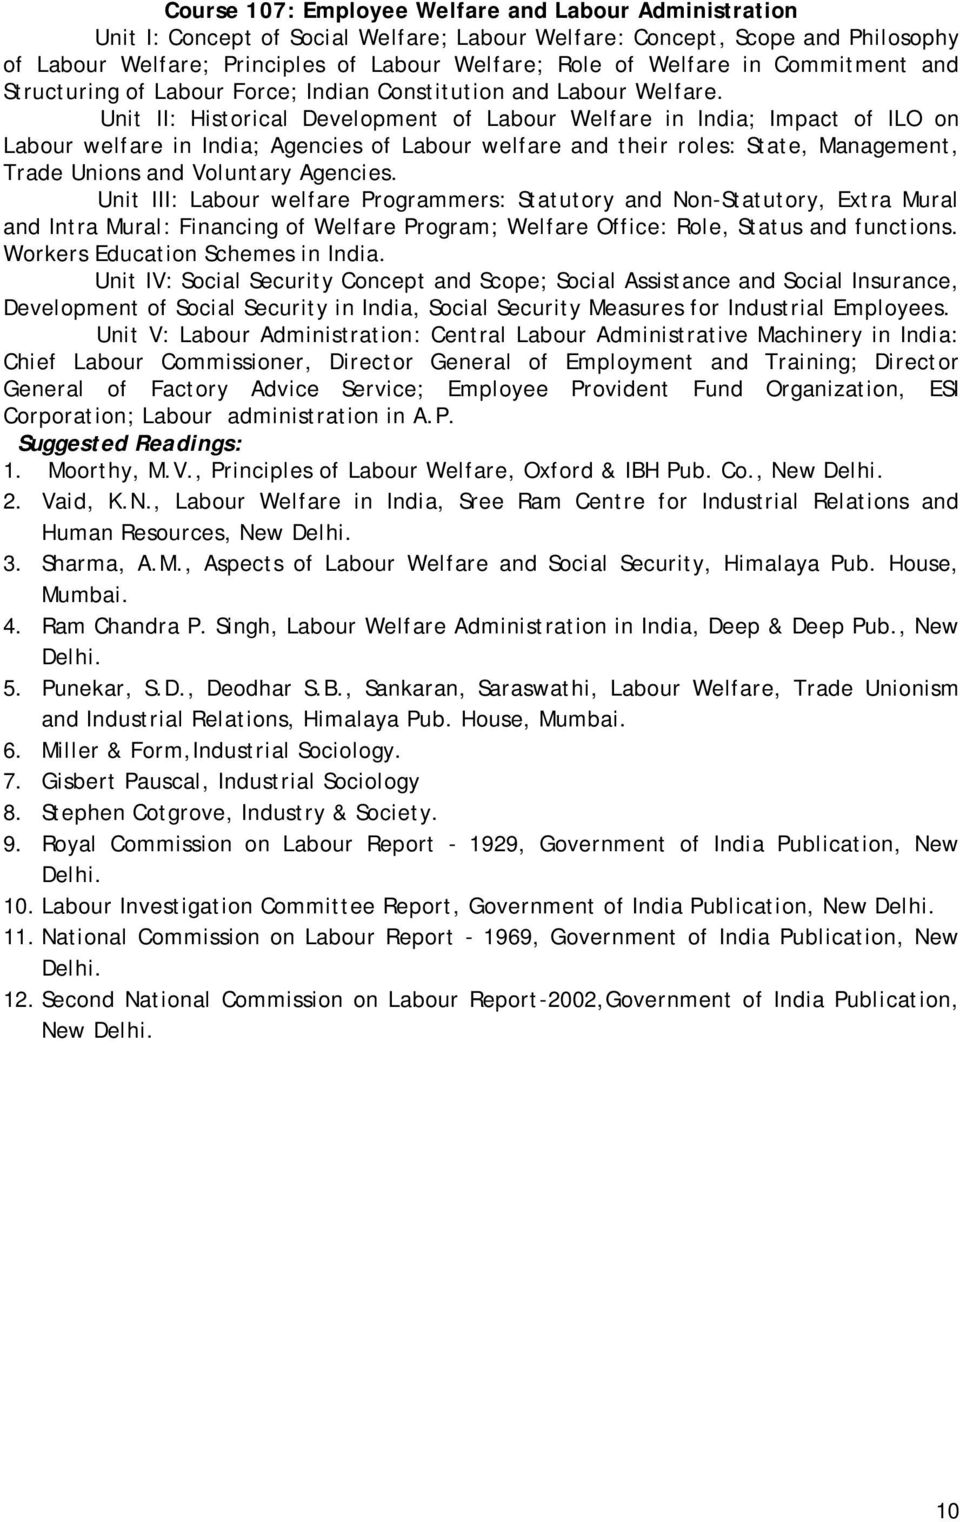 Unit II: Historical Development of Labour Welfare in India; Impact of ILO on Labour welfare in India; Agencies of Labour welfare and their roles: State, Management, Trade Unions and Voluntary